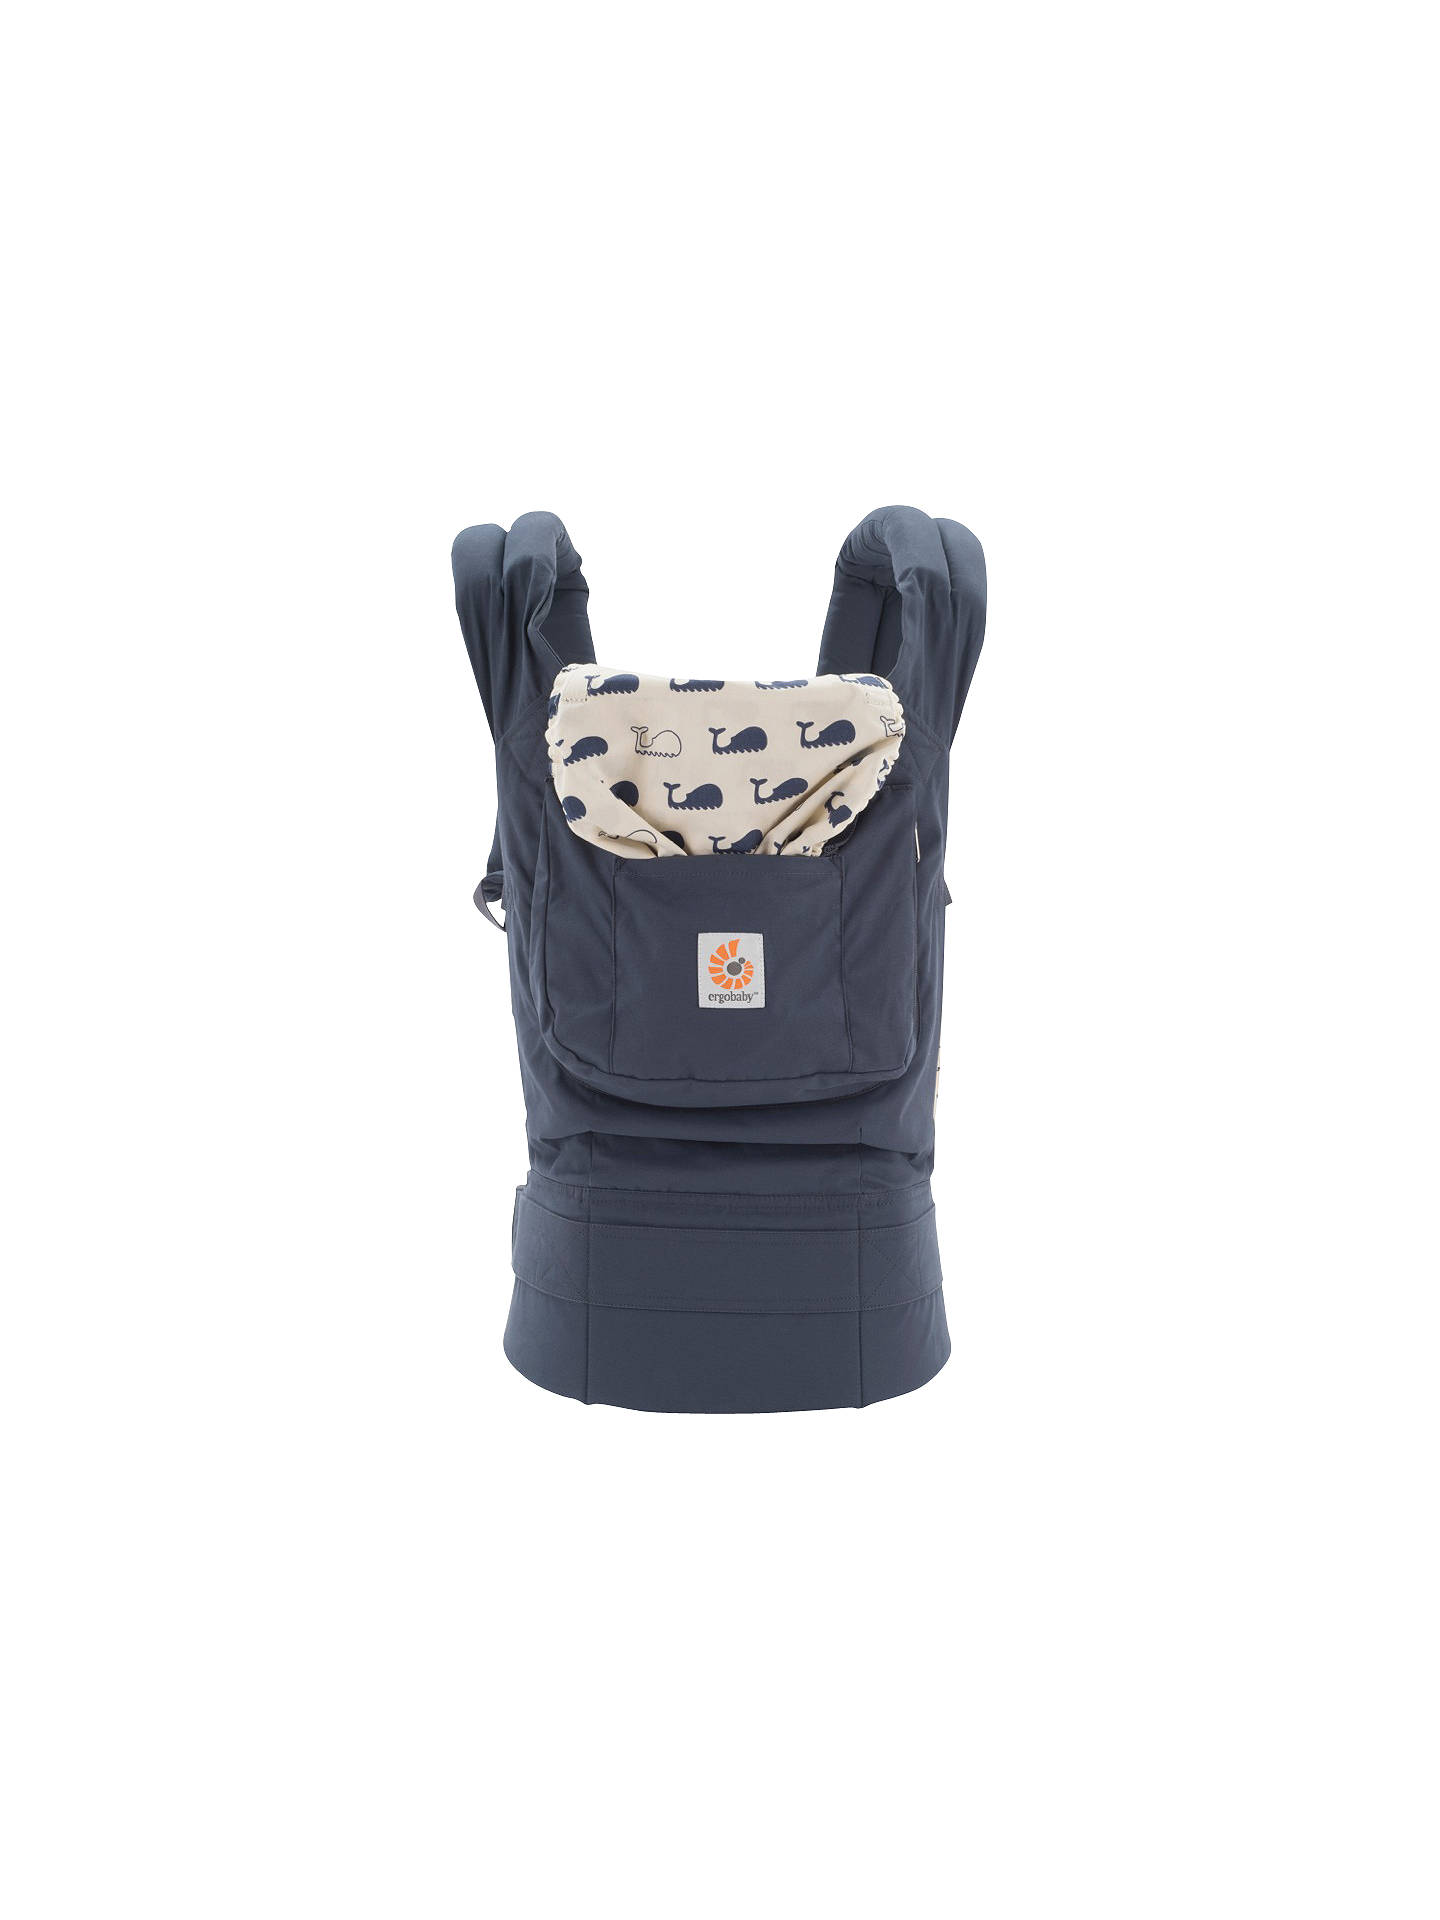 new product a0c96 832c7 Buy Ergobaby Original Baby Carrier, Marine Online at johnlewis.com ...